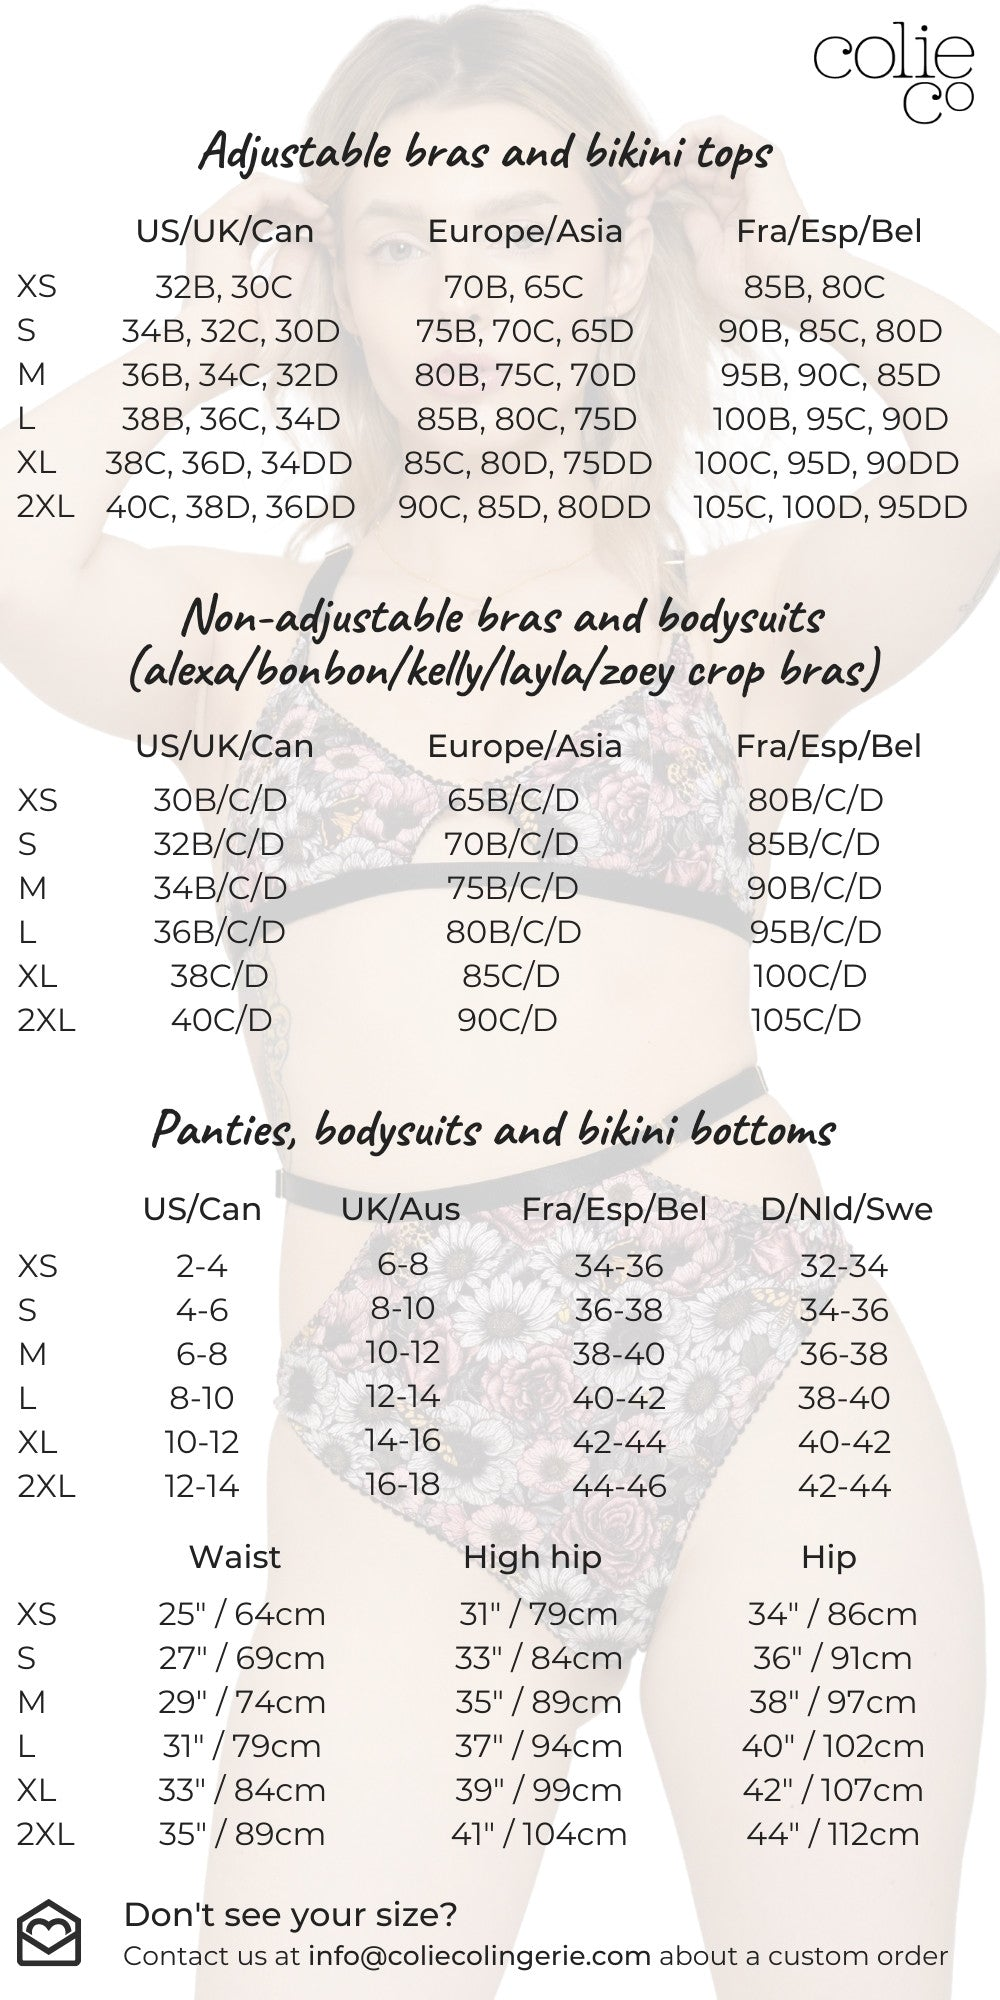 ColieCo Lingerie sizing chart